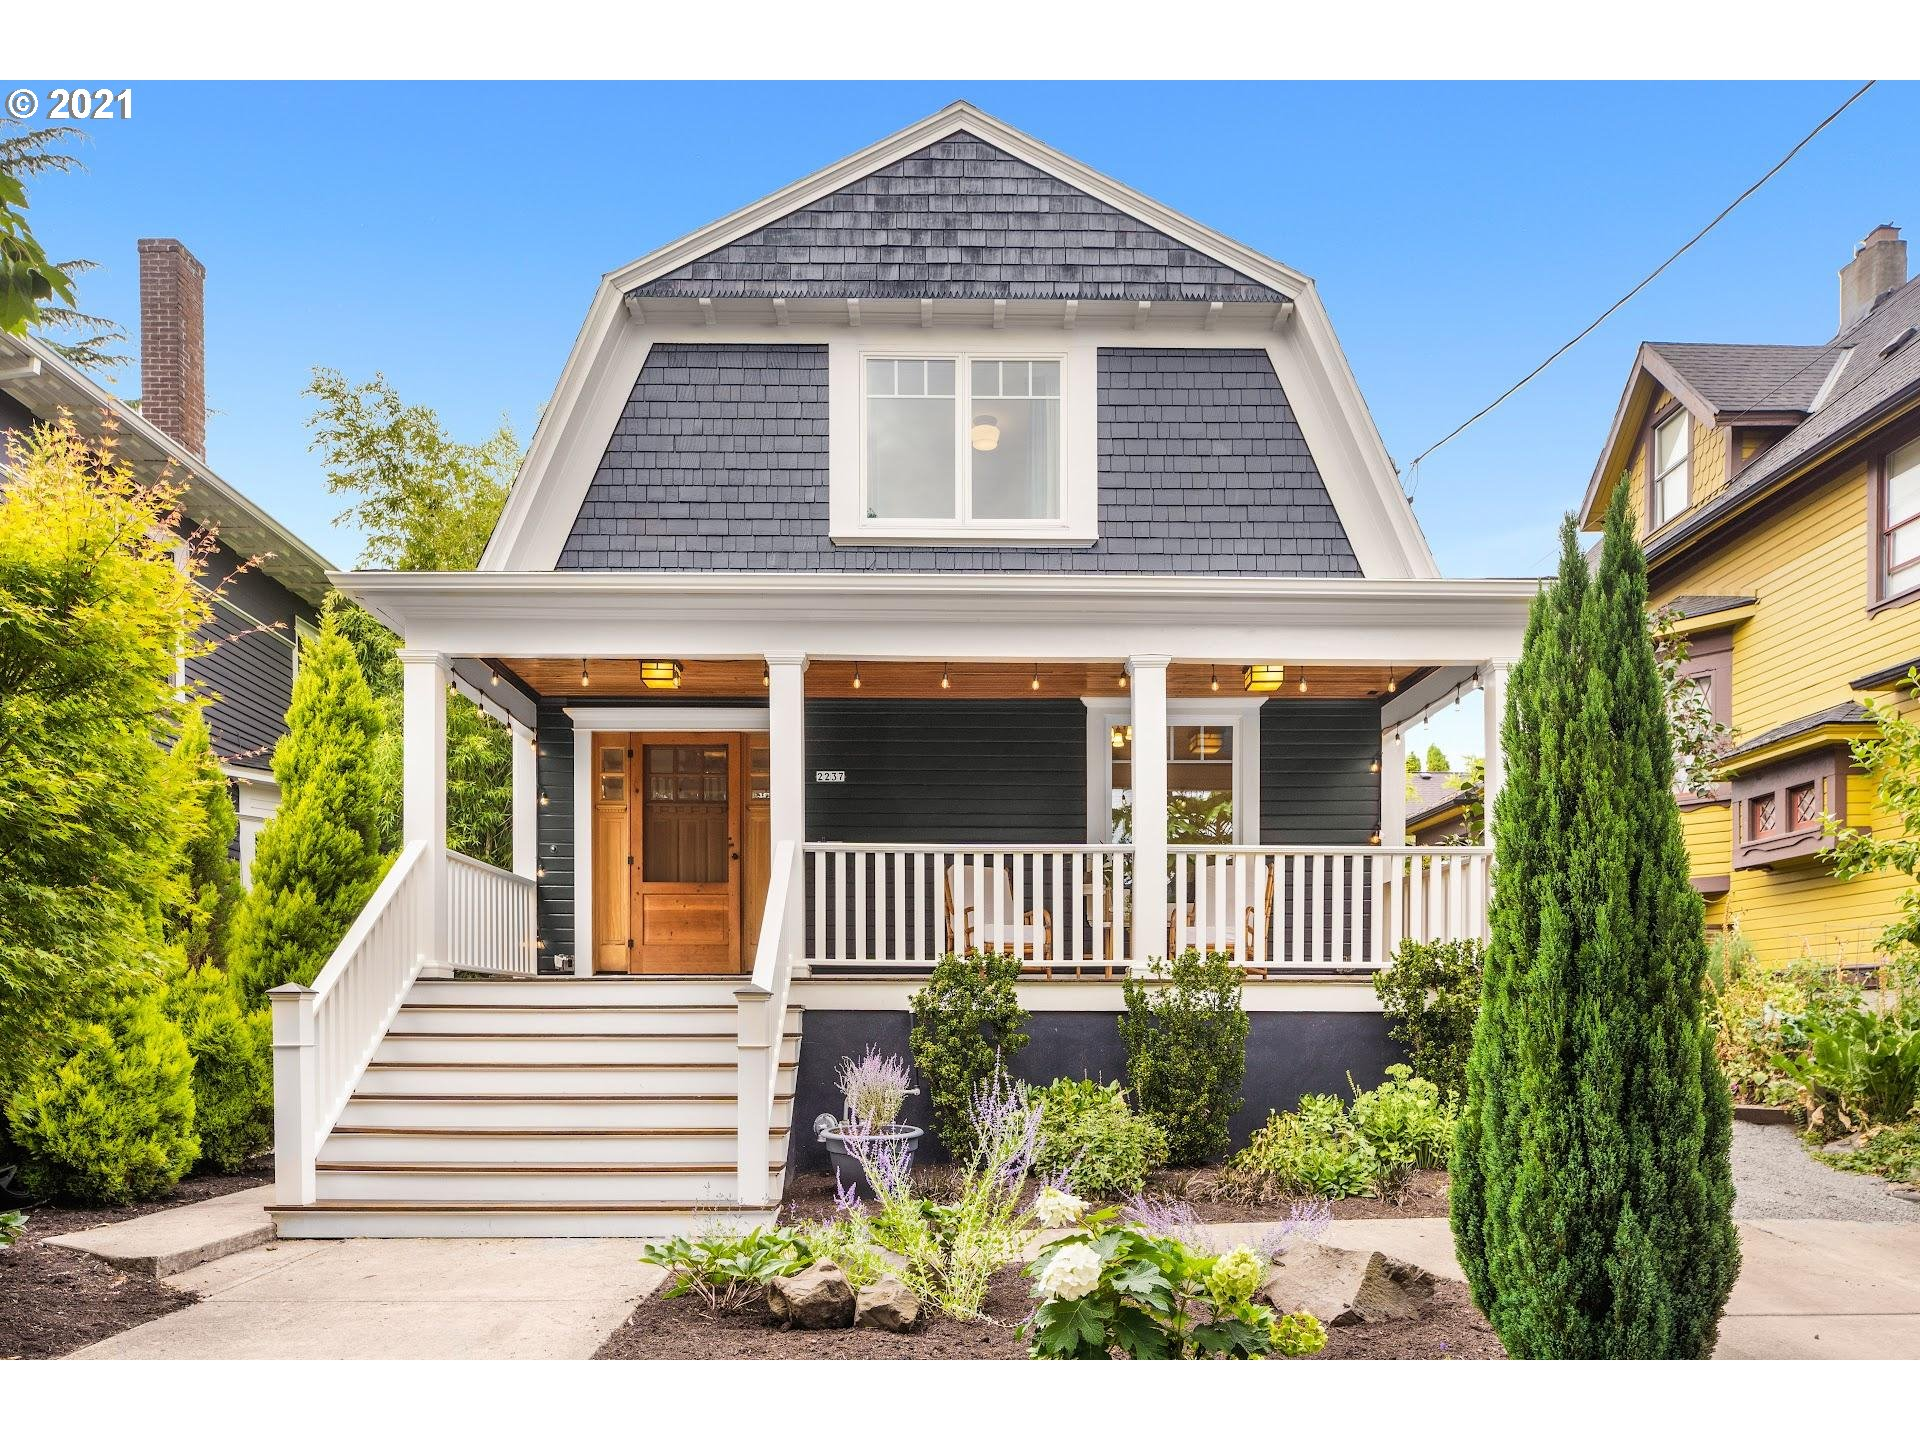 Prime location on coveted street in Sullivans Gulch. A block brimming w/ charm, lush gardens, amazing neighbors and incredible walkability! This light, bright, uber-charming Dutch Colonial Farmhouse boasts updated systems, too: plumbing, electrical, windows, insulation, even duct work! Tall ceilings.Awesome layout. Open main floor. 3 bds up + 2 more down in finished basement. Enviable proximity (< 1 mile) to the countless restaurants, shops, bars of NE 28th, NE Broadway, SE Pdx, downtown, Pearl! [Home Energy Score = 3. HES Report at https://rpt.greenbuildingregistry.com/hes/OR10193484]